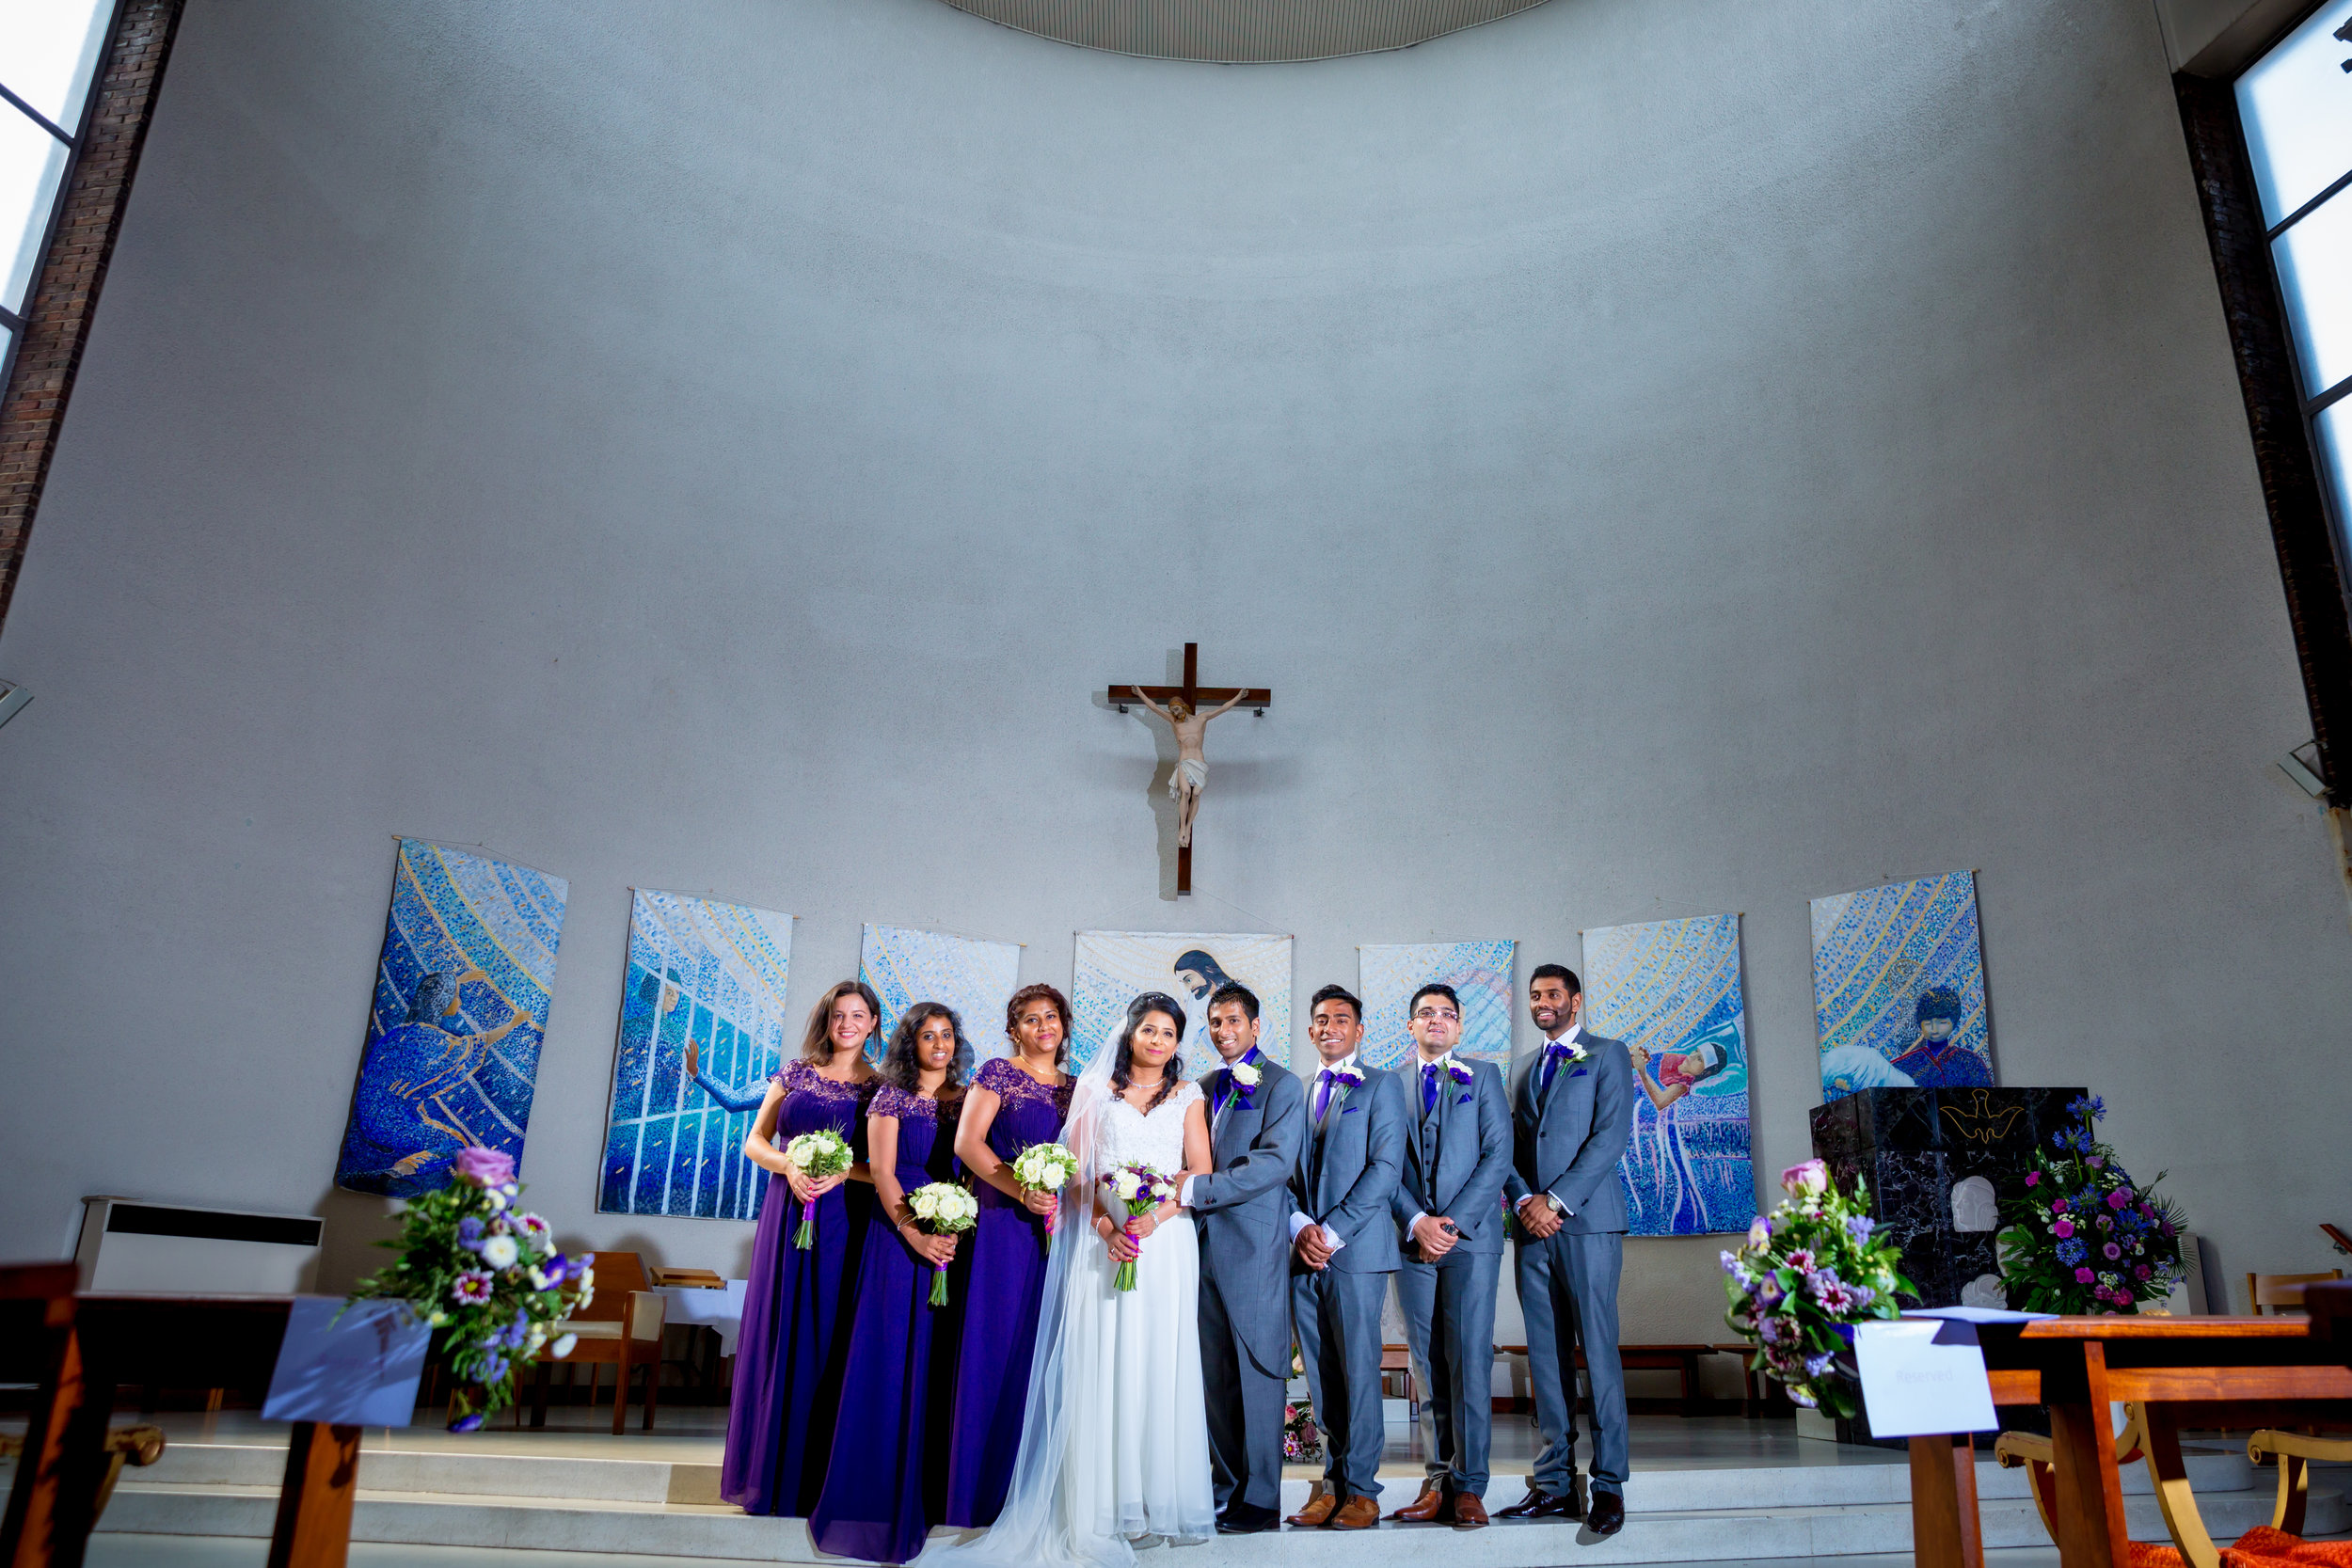 Churchwedding-212.jpg